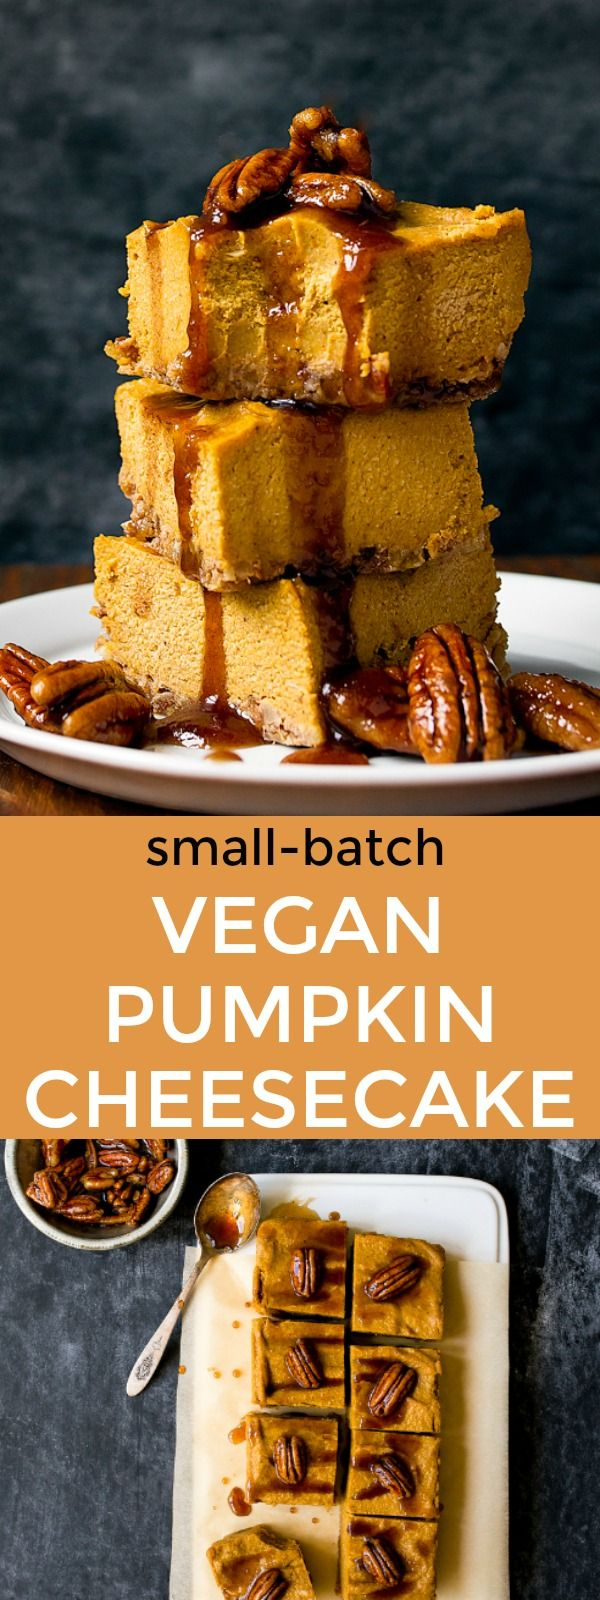 Vegan Pumpkin Pie Cheesecake Bars No Bake Almost Raw And Uses Cashews Cashew Cream Is A Win For Smal Pumpkin Cheesecake Bars Vegan Pumpkin Diy Easy Recipes